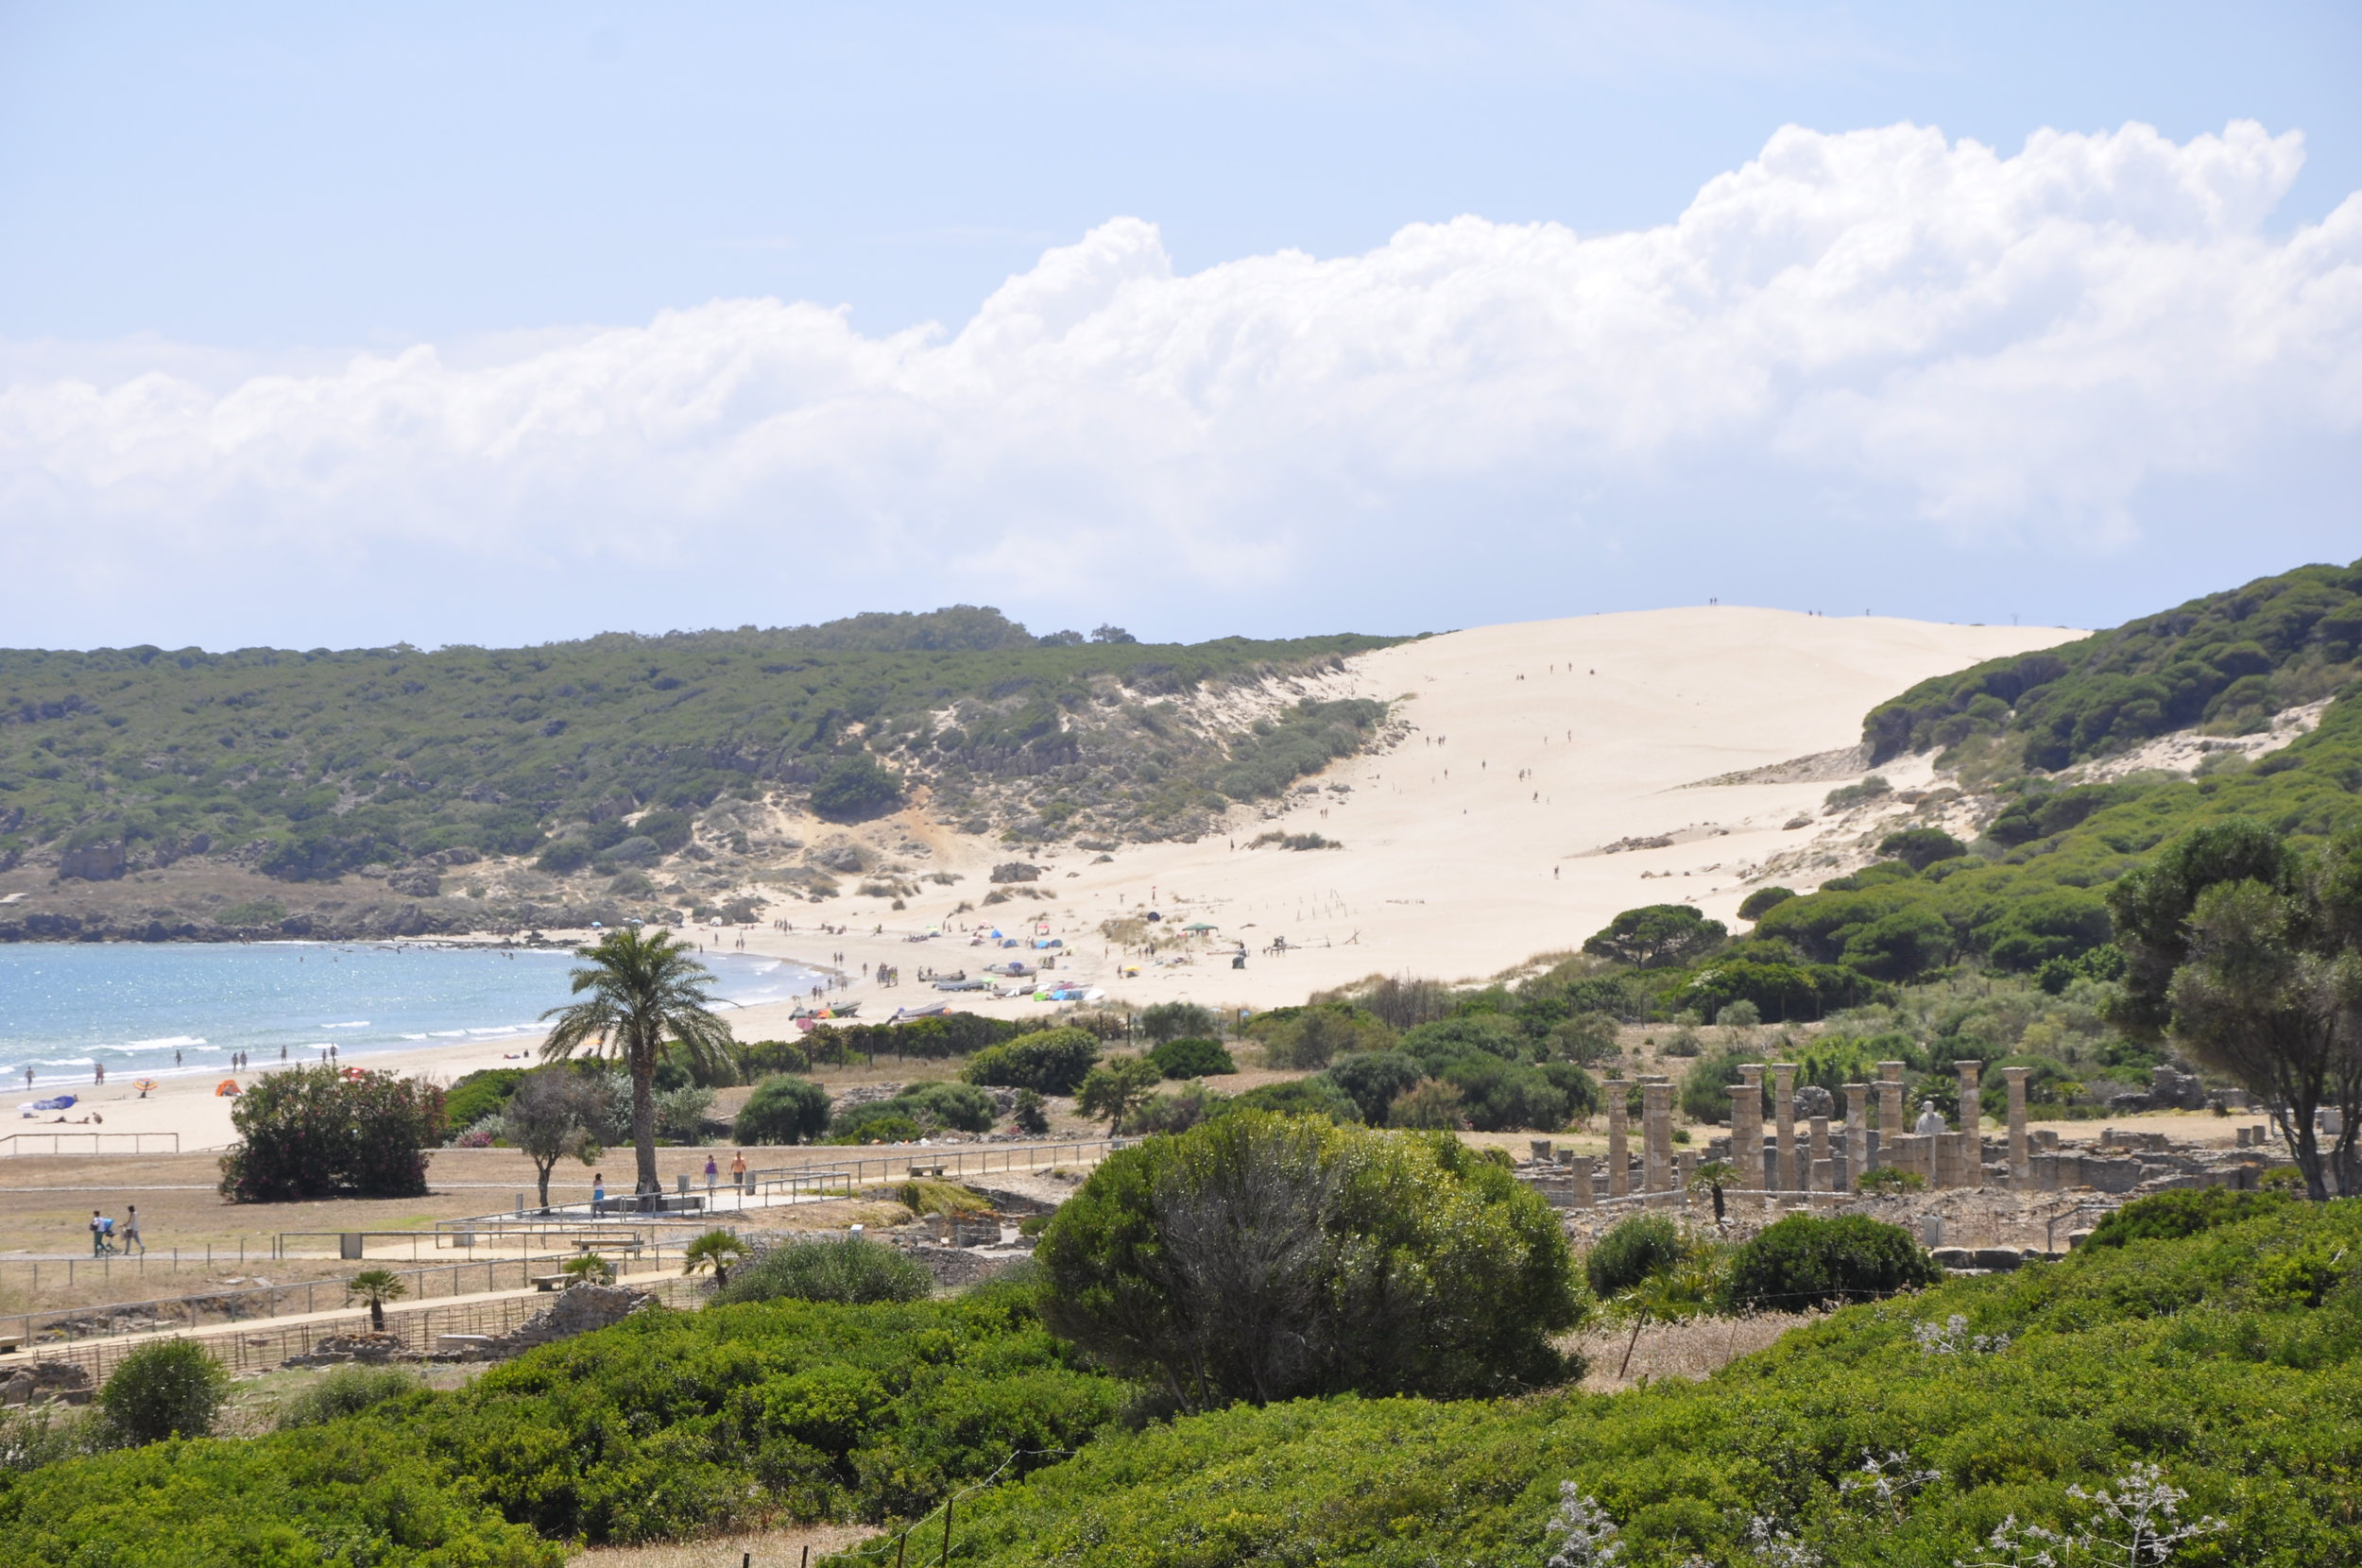 Climb the National Monument - Bolonia's 30-metre sand dune grows taller every year. The surplus provides less well-endowed resorts with their annual beach top-up.